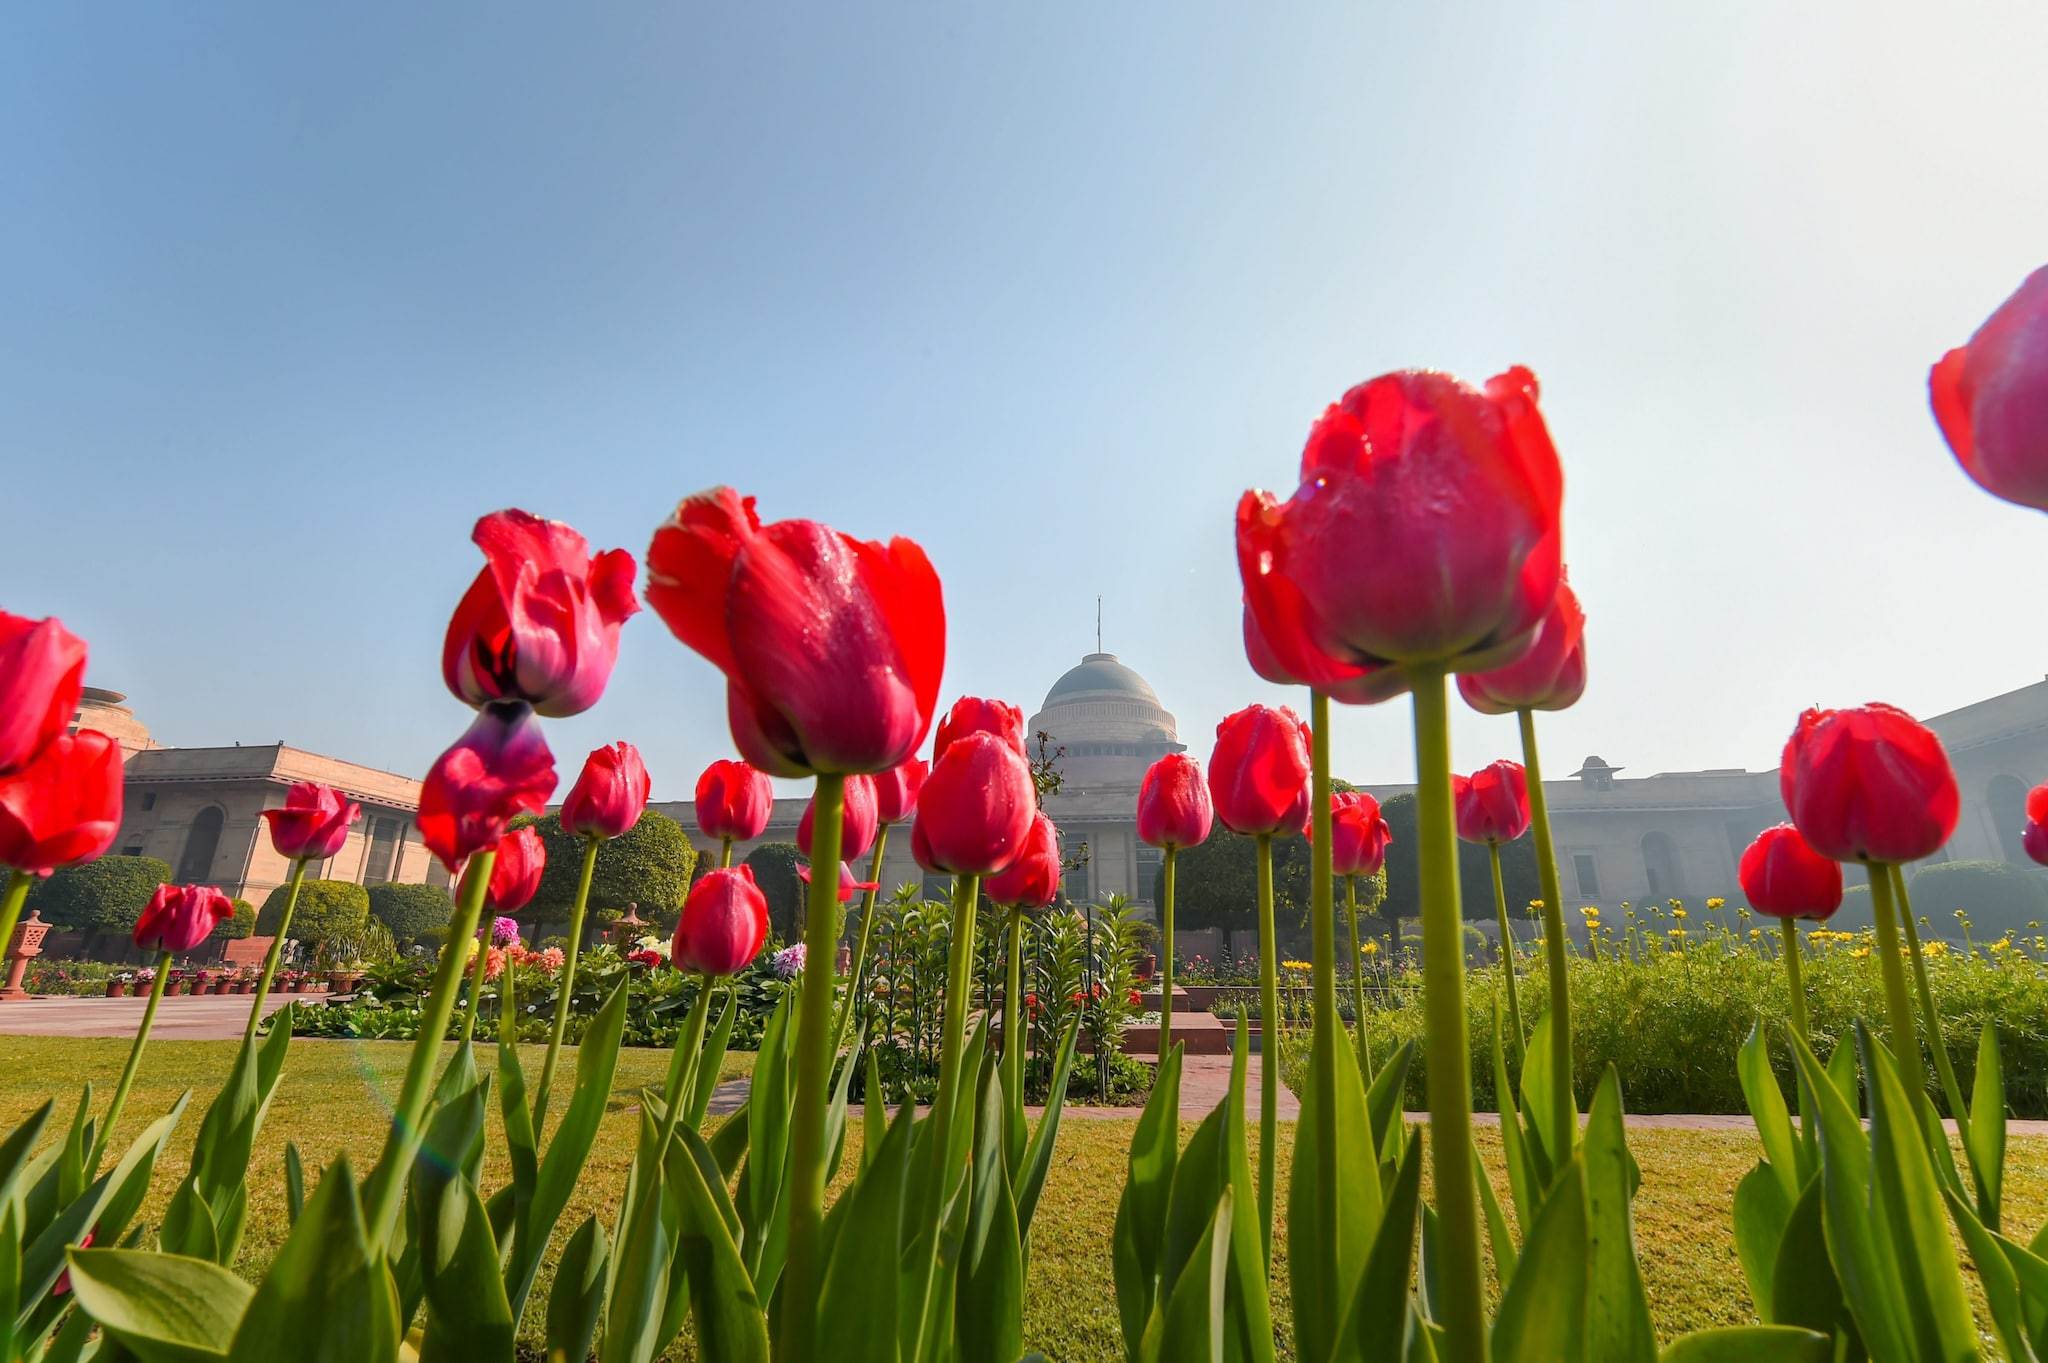 Tulips in full bloom at the Mughal Gardens of Rashtrapati Bhavan, in New Delhi, Monday, Feb. 04, 2019. The Mughal Gardens will open for the general public from Wednesday, Feb. 06 to March 10, 2019.